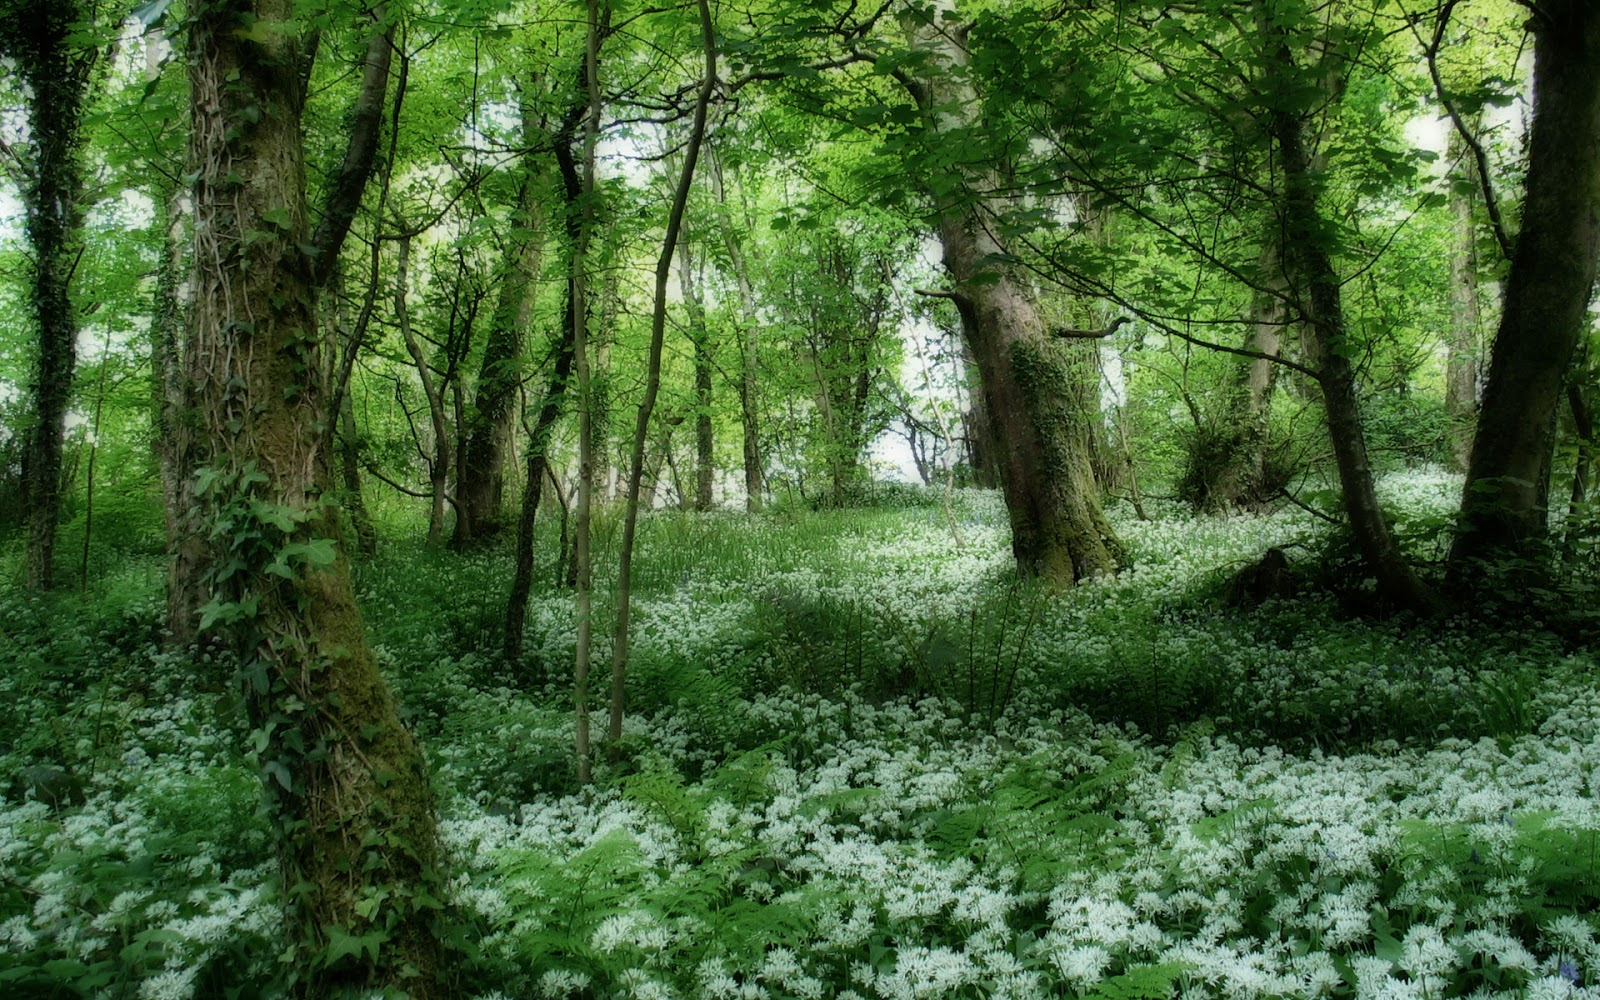 Download Free Forest Wallpapers | Most beautiful places in ...